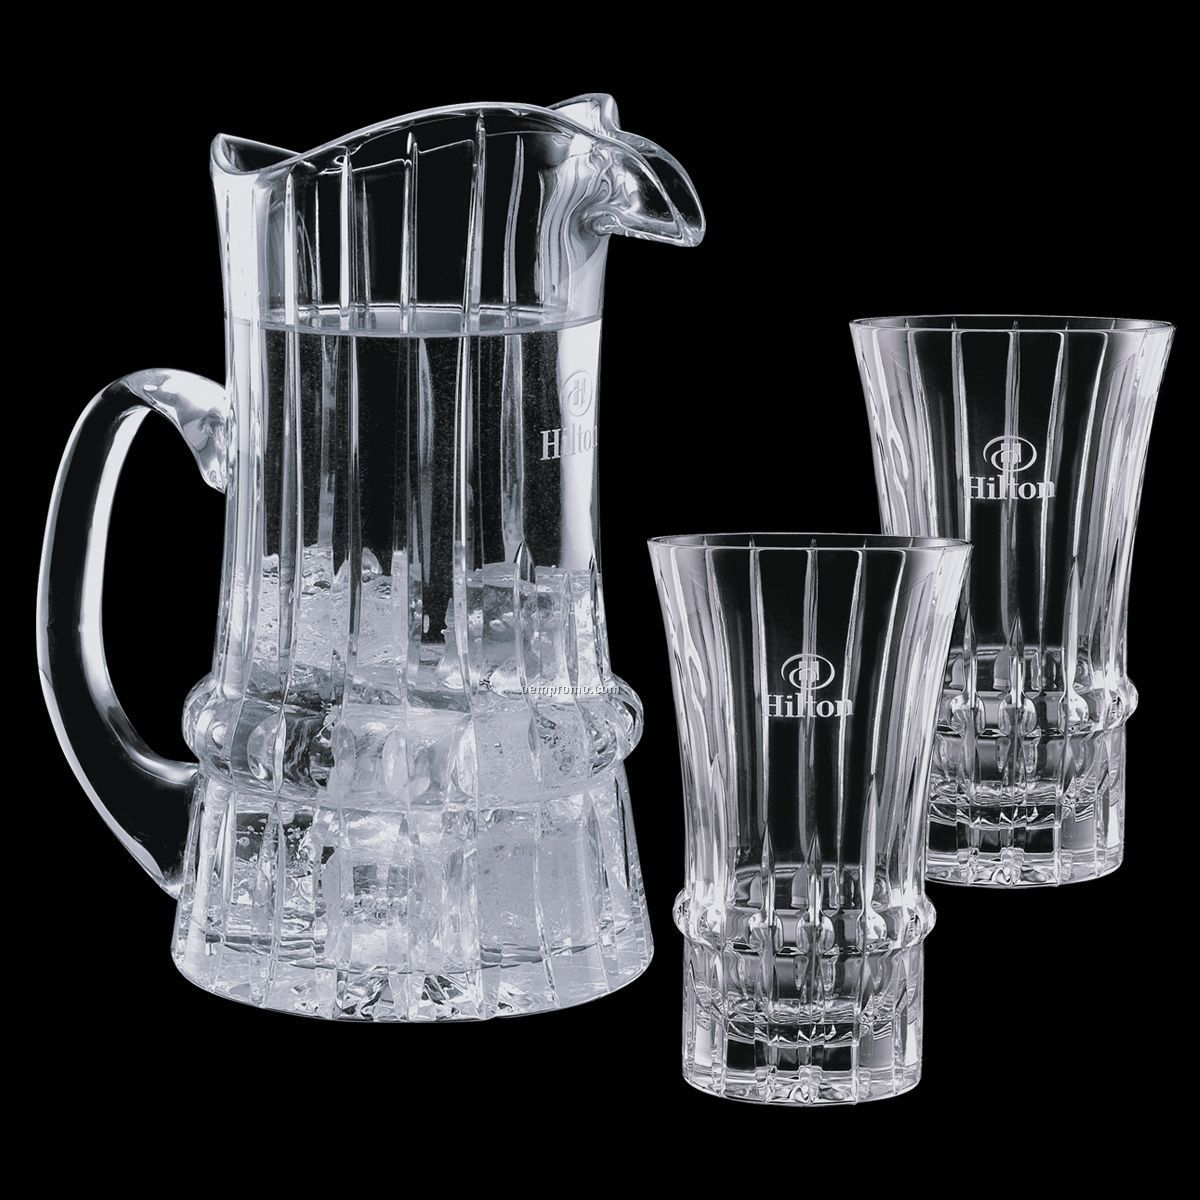 Steinbach Crystal Pitcher And 2 Cooler Glasses